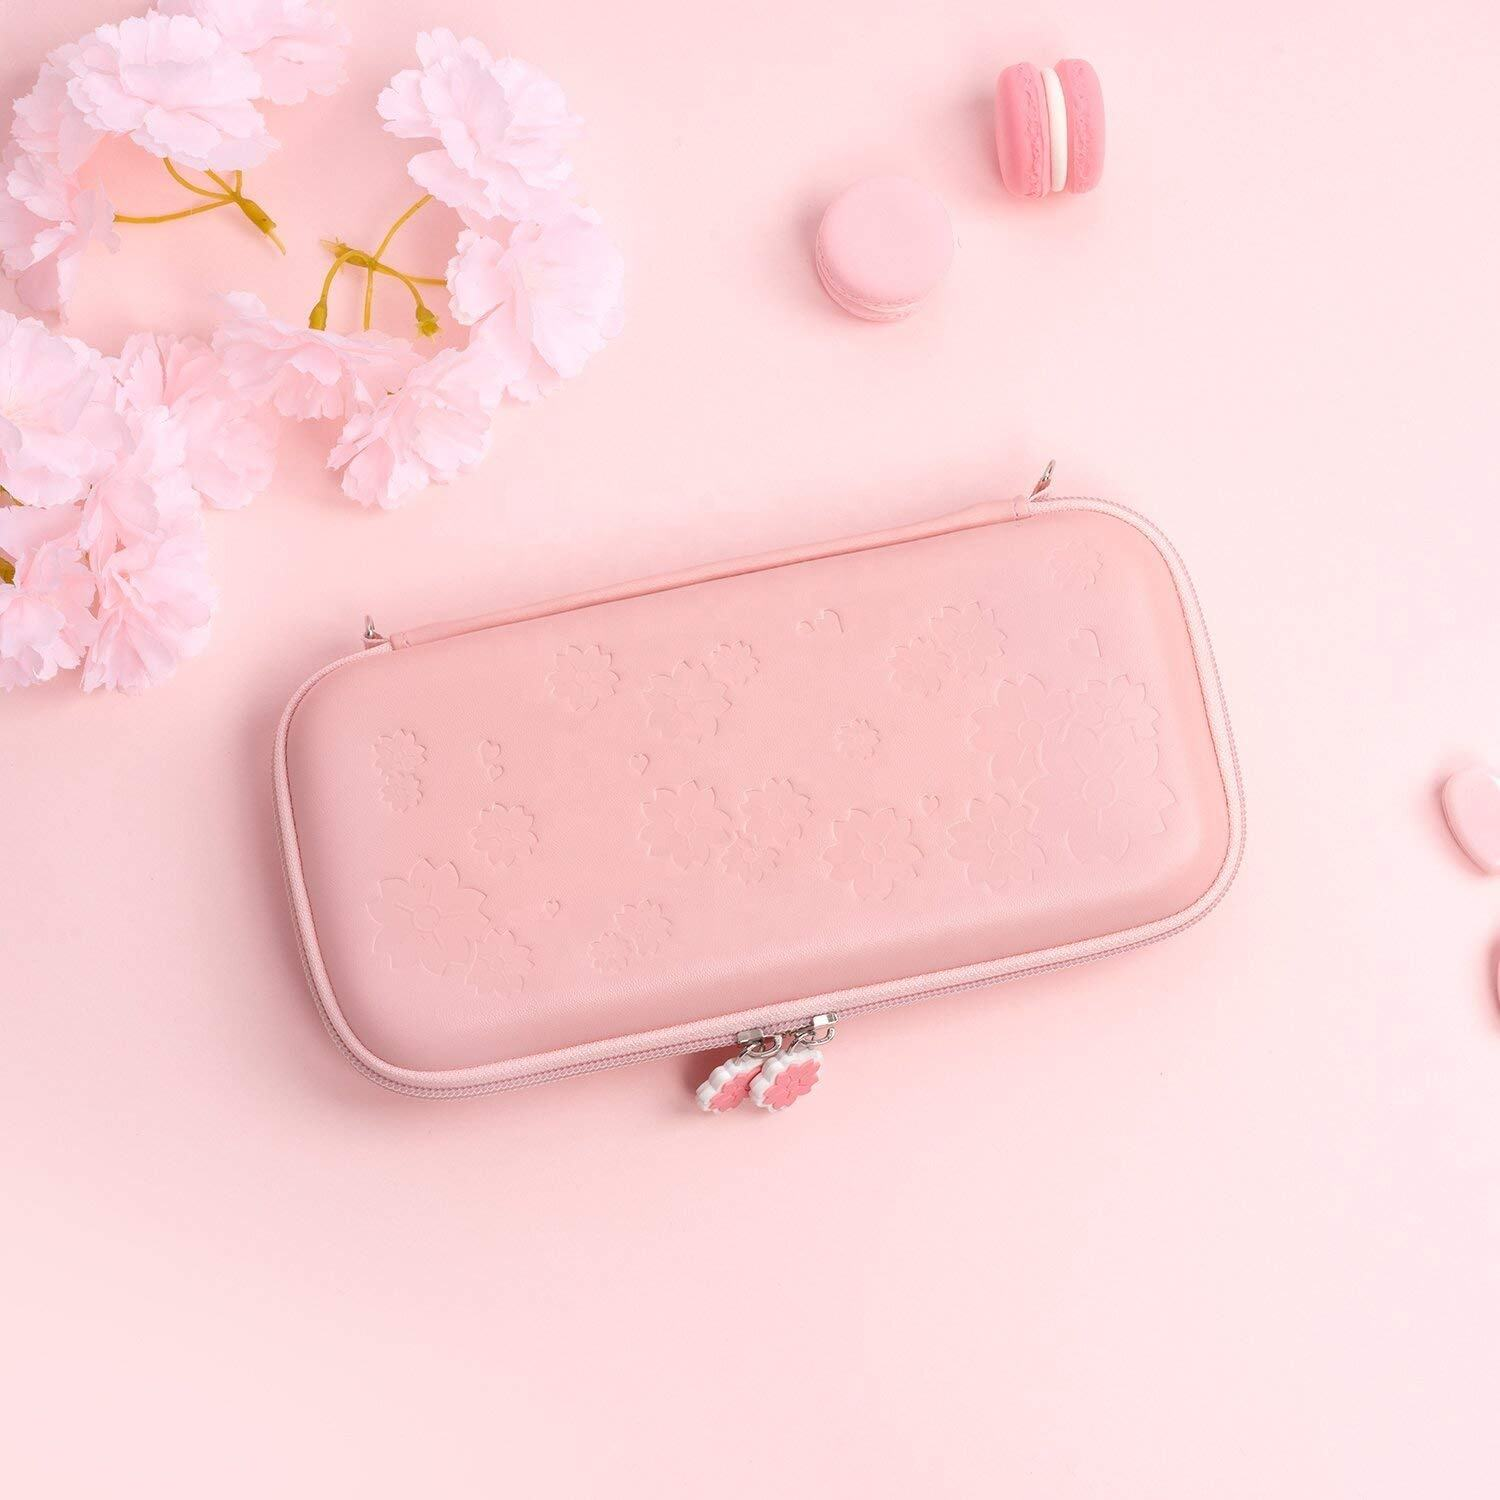 2020 Ultra Slim Portable Hard Shell Travel Case for NS Console and Accessories Sakura Pink Carry Case for Nintendo Switch